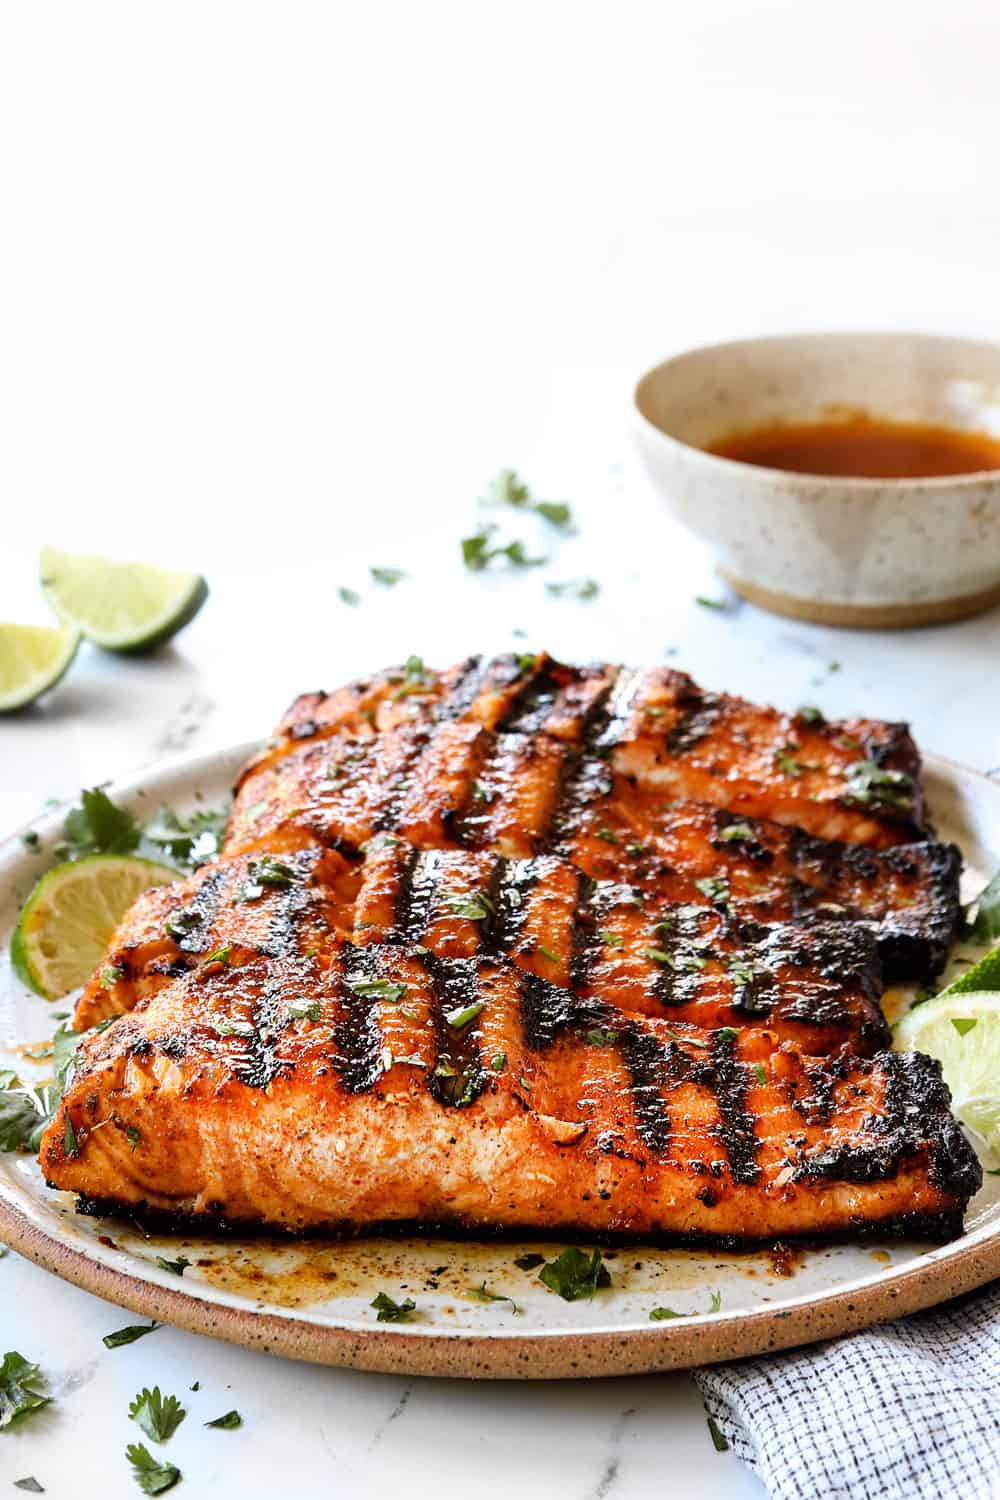 grilled salmon recipe on a plate garnished by cilantro